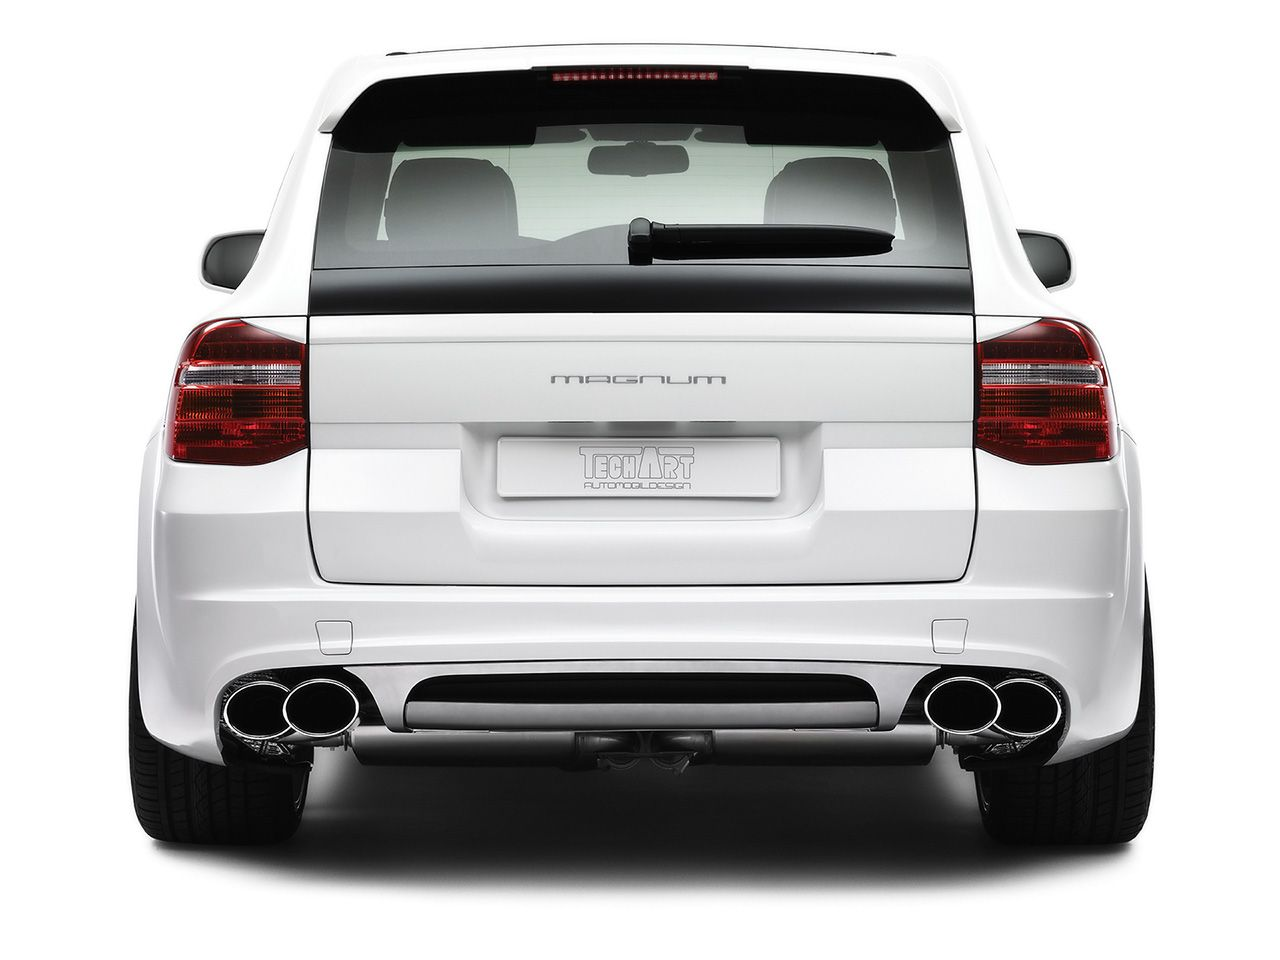 Magnum automobile 2008 techart magnum based on porsche cayenne rear 1280x960 150x150